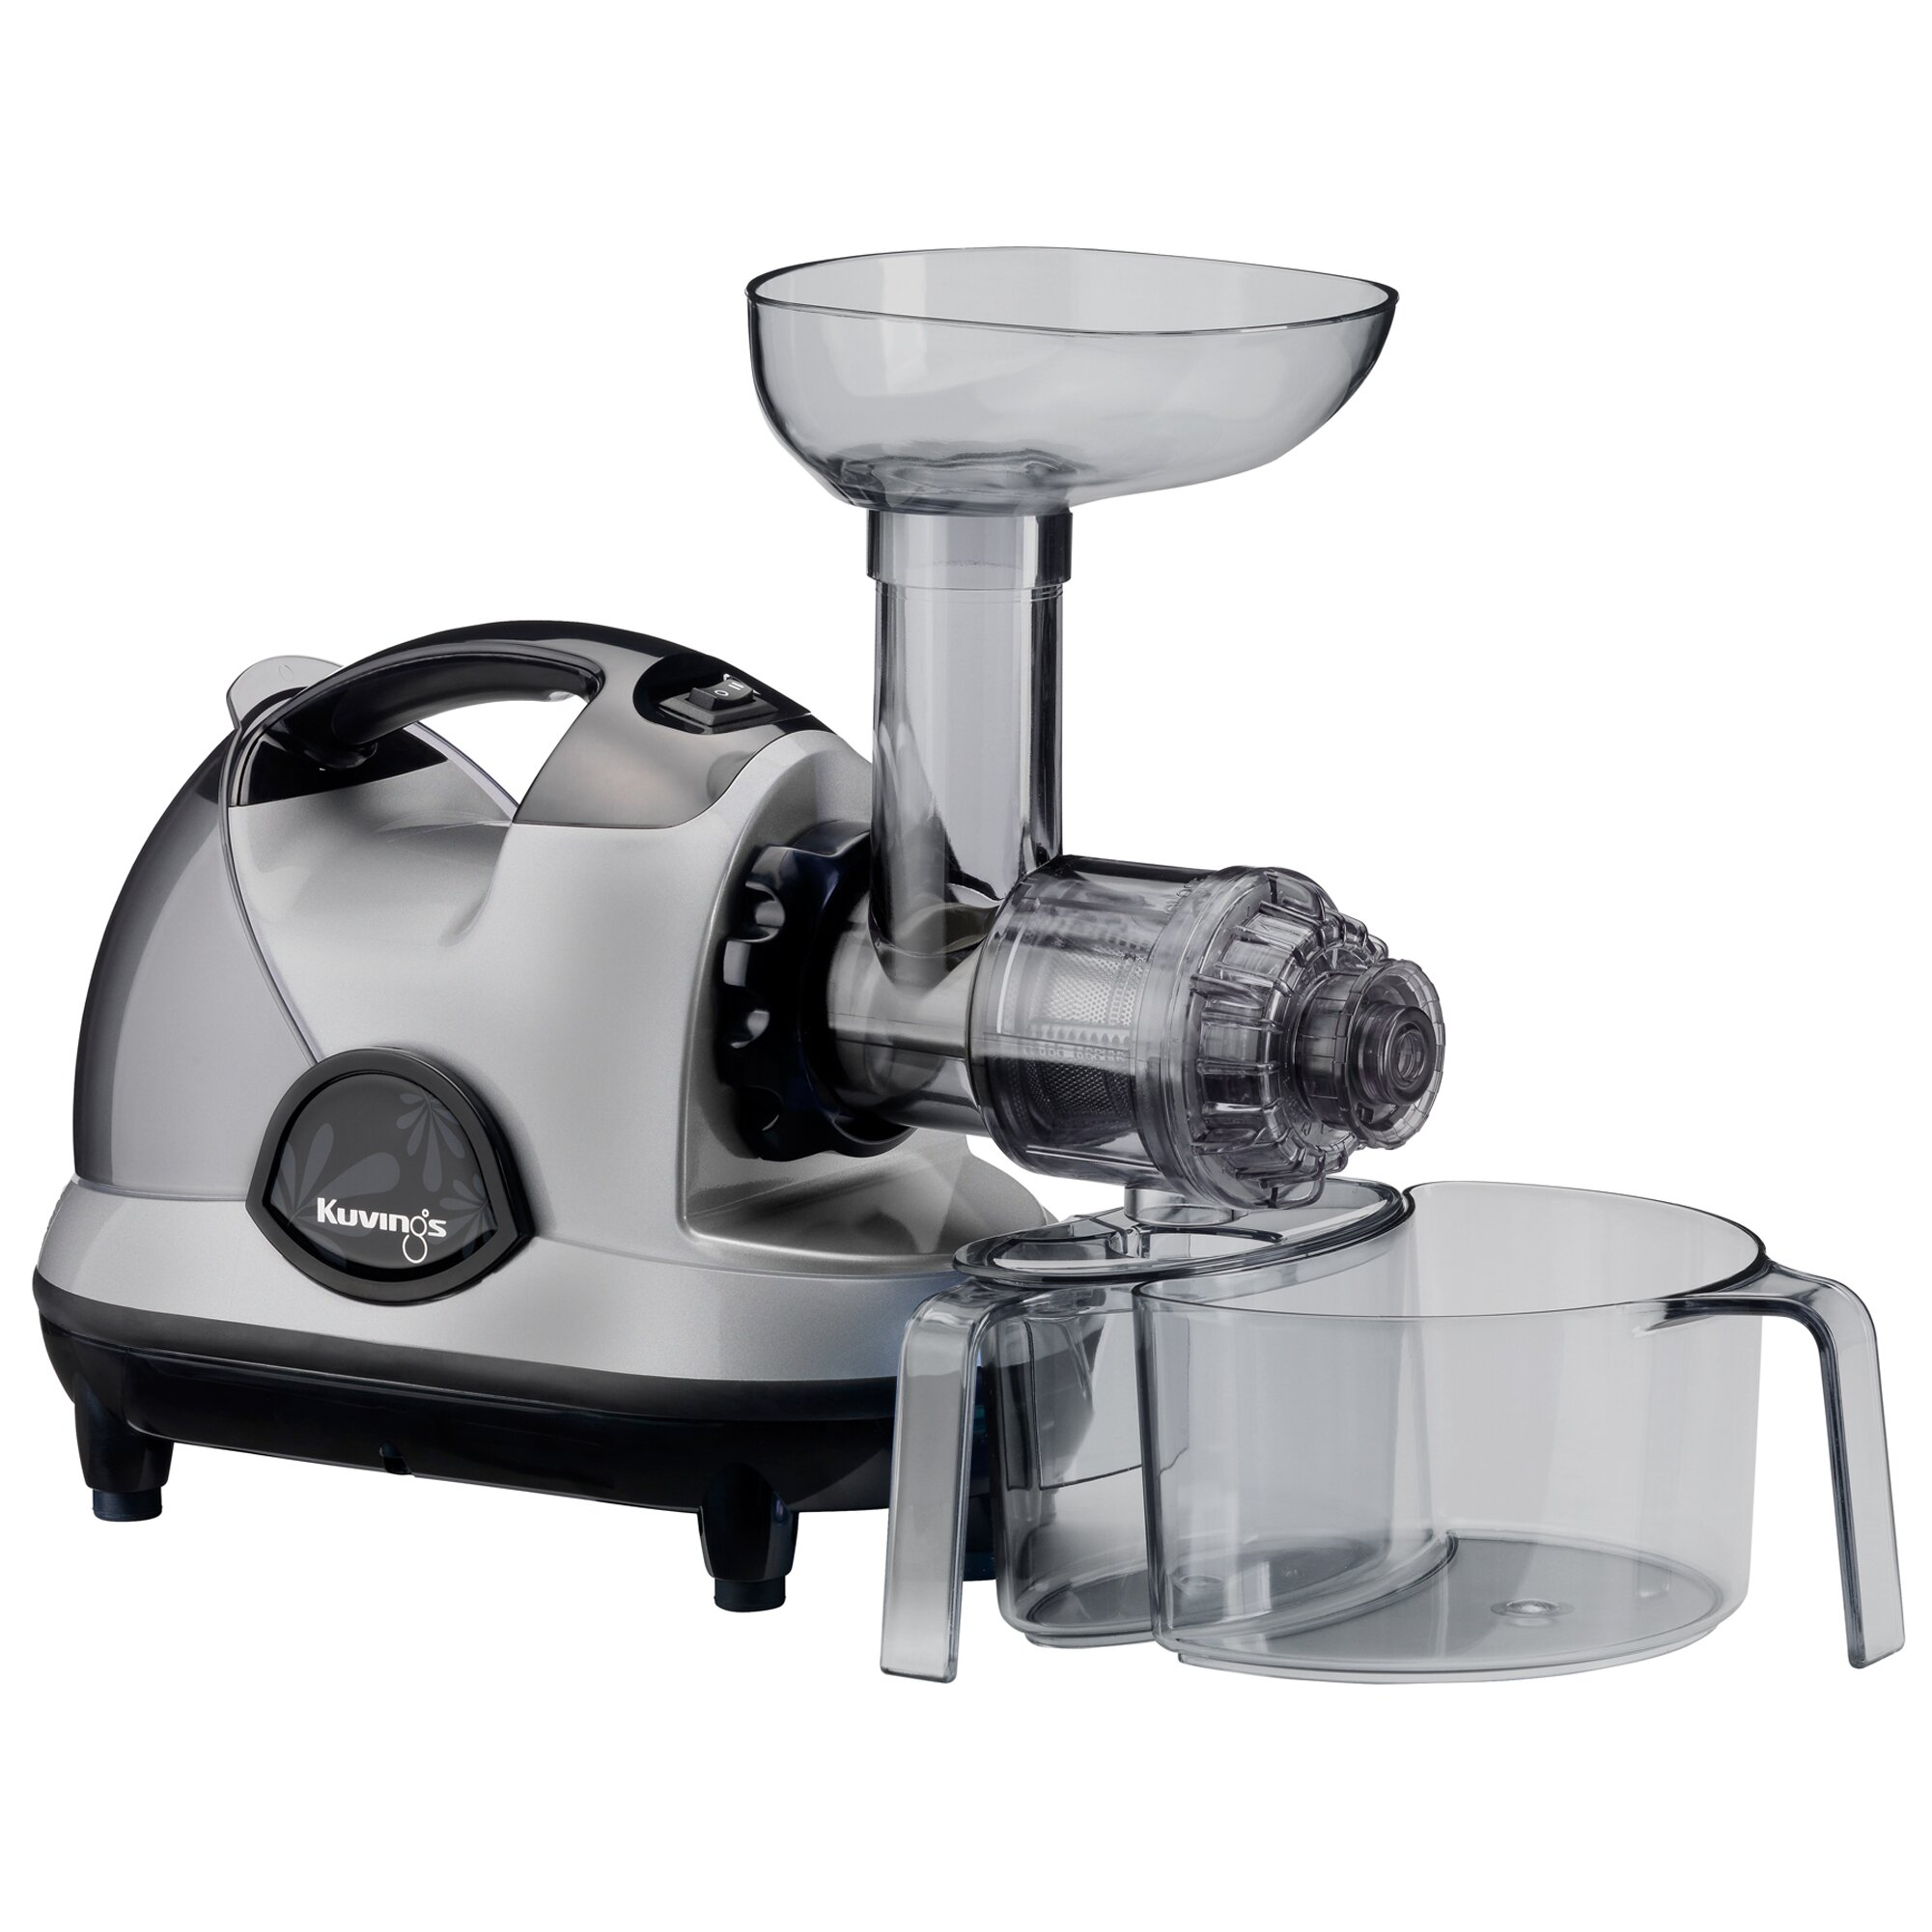 Naturai Slow Juicer Review : KUvINGS Multi-Purpose Slow Juicer & Reviews Wayfair